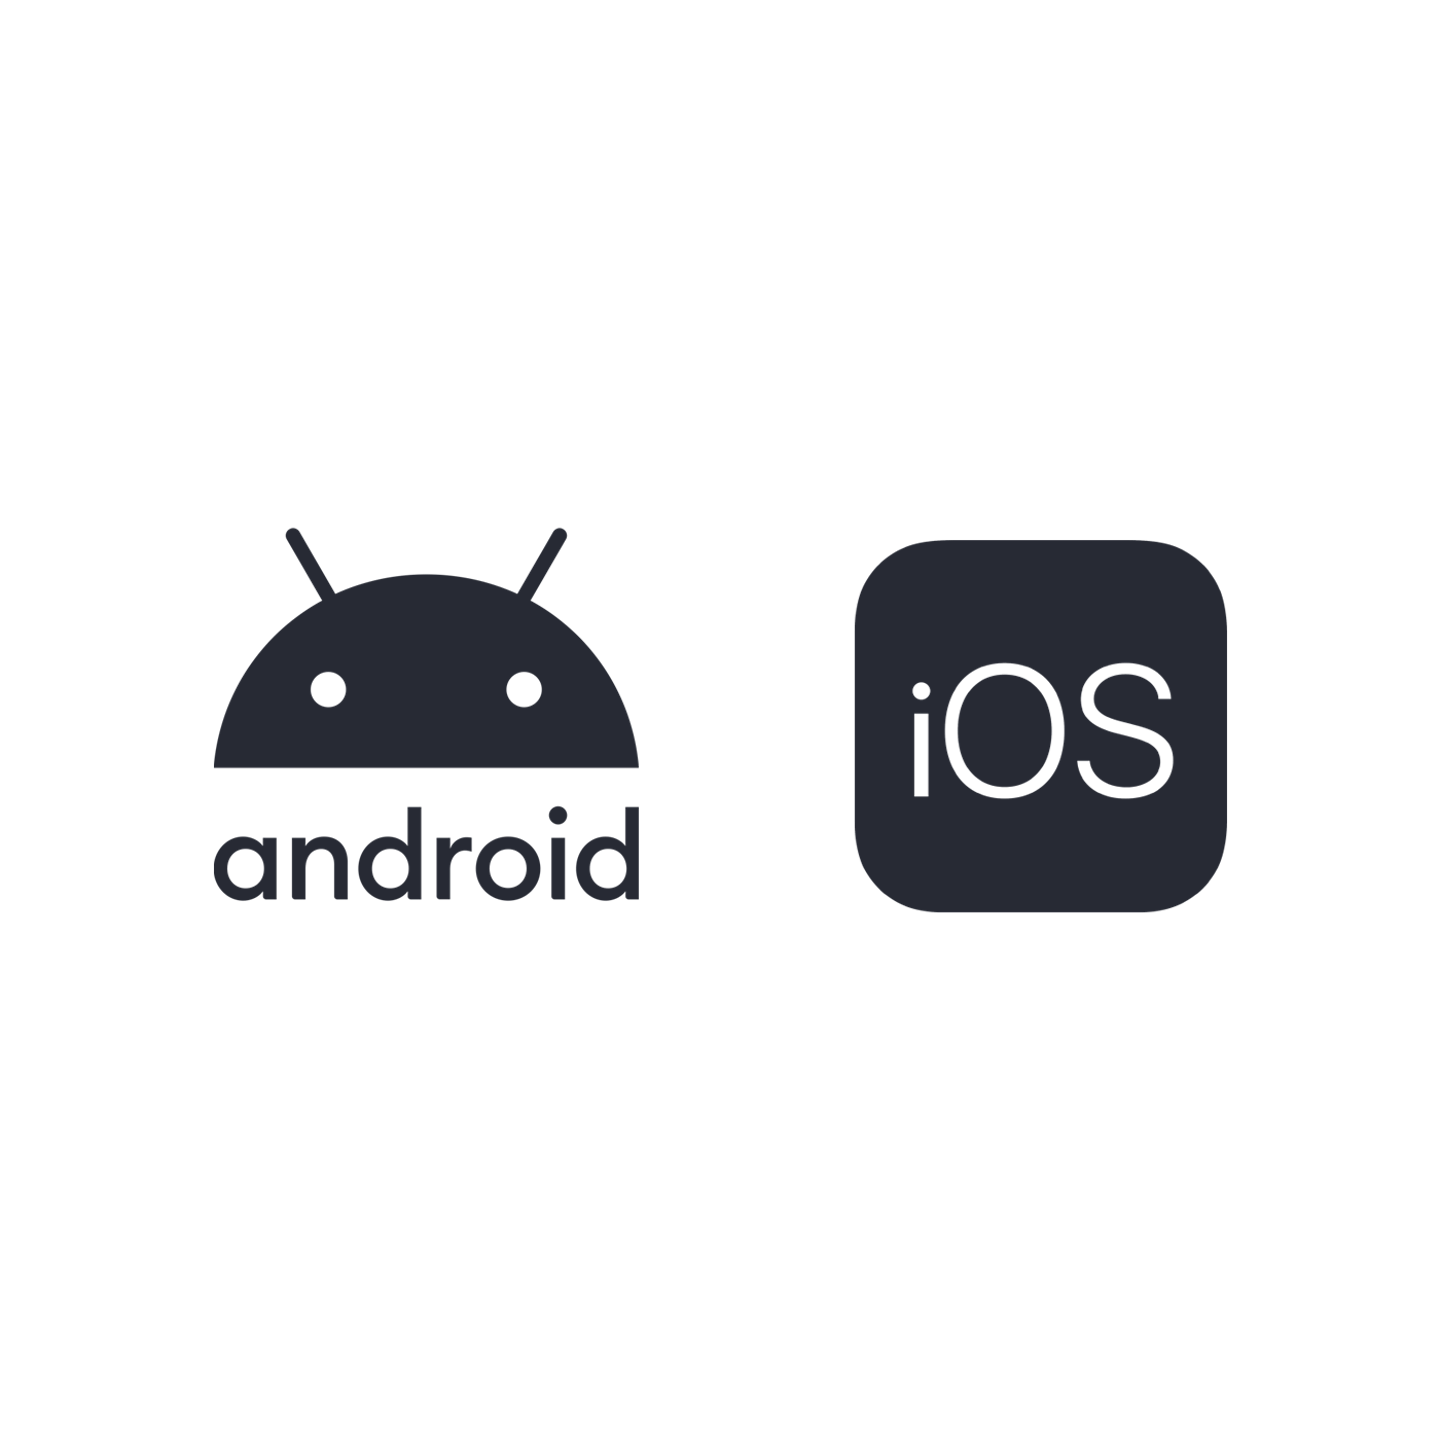 Android i OS